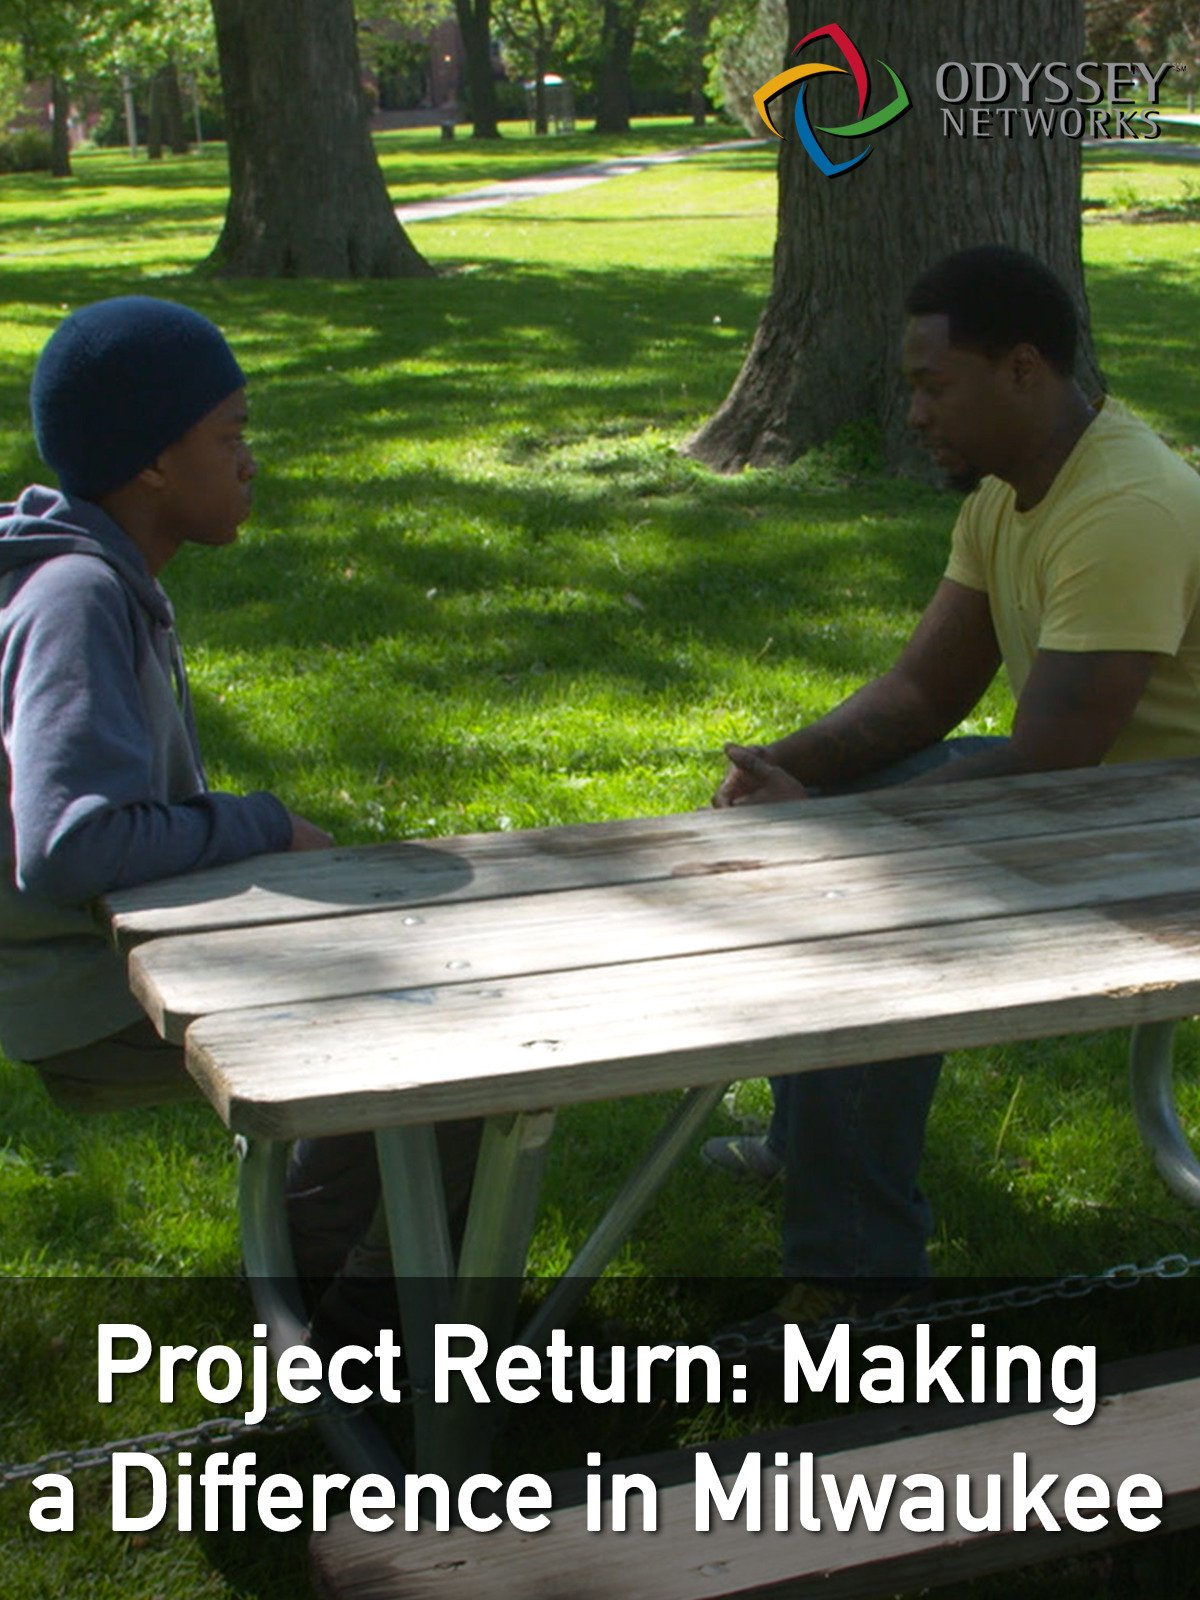 Clip: Project Return: Making a Difference in Milwaukee